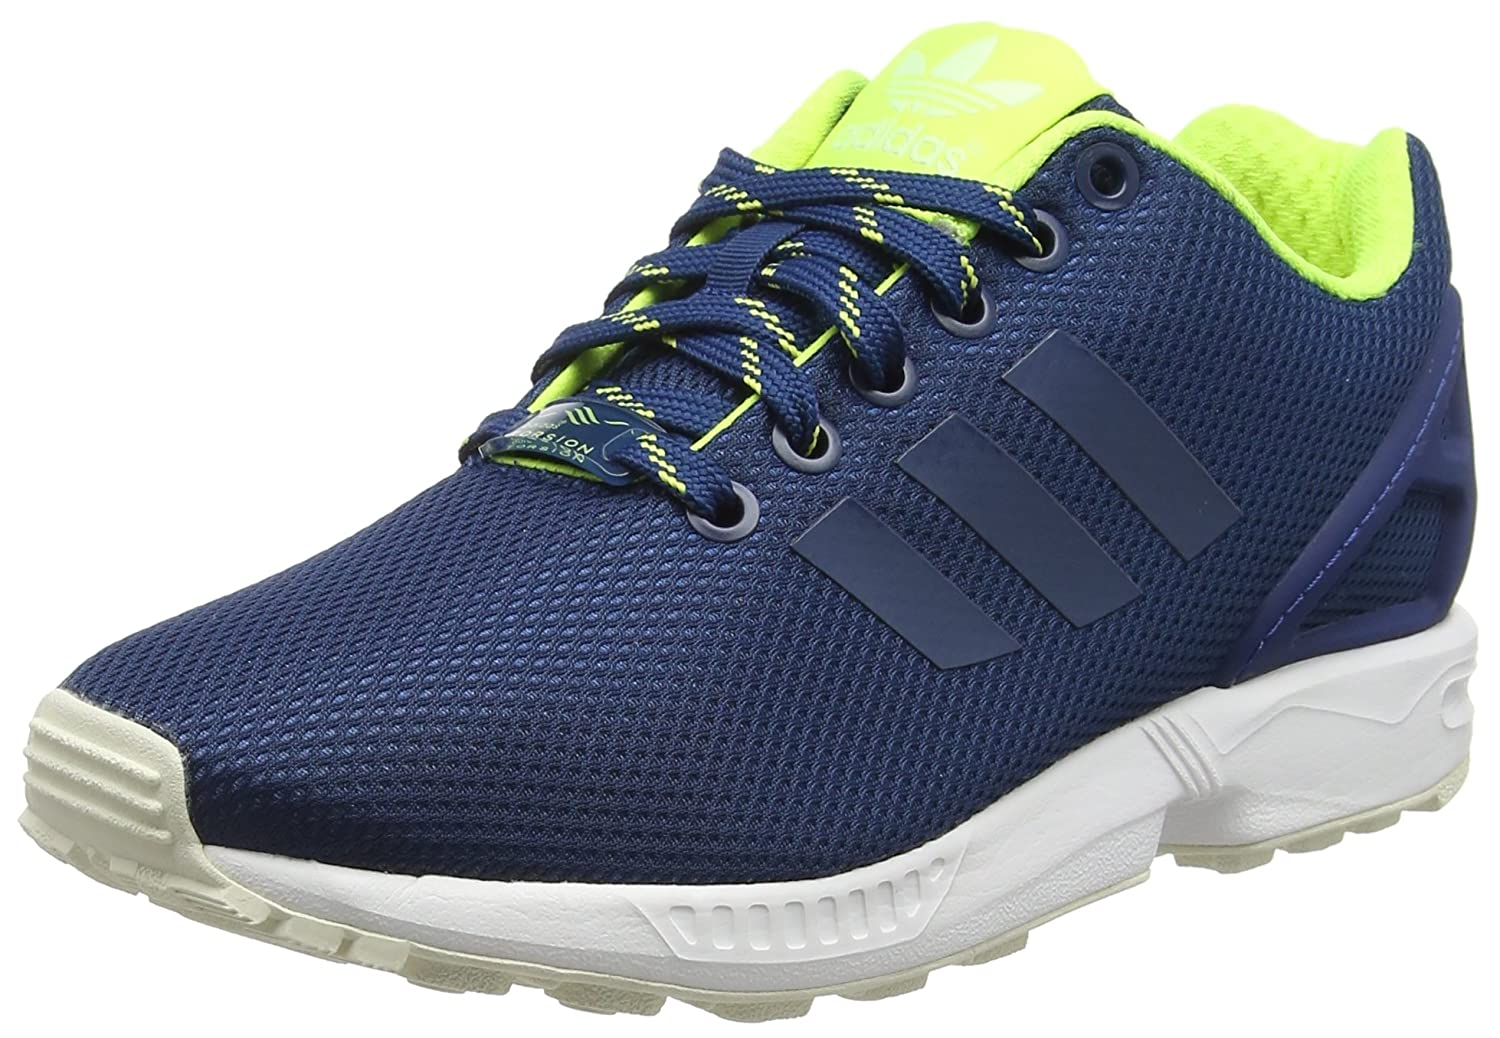 7c6c1ef6312c4 adidas Men s ZX Flux Training Running Shoes  Amazon.co.uk  Shoes   Bags